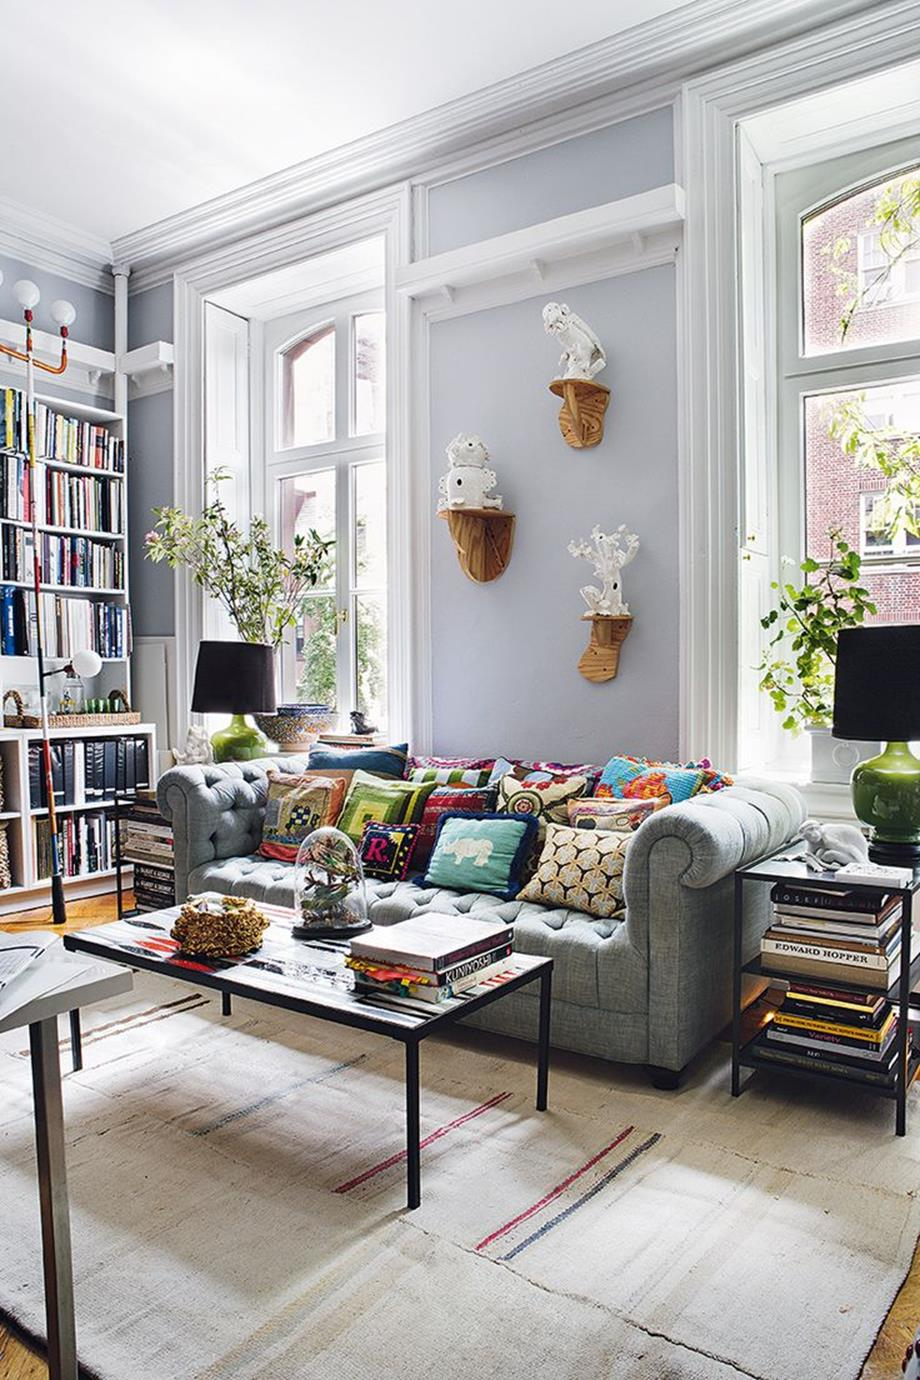 City Chic Living Room Decorating Ideas On a Budget 17